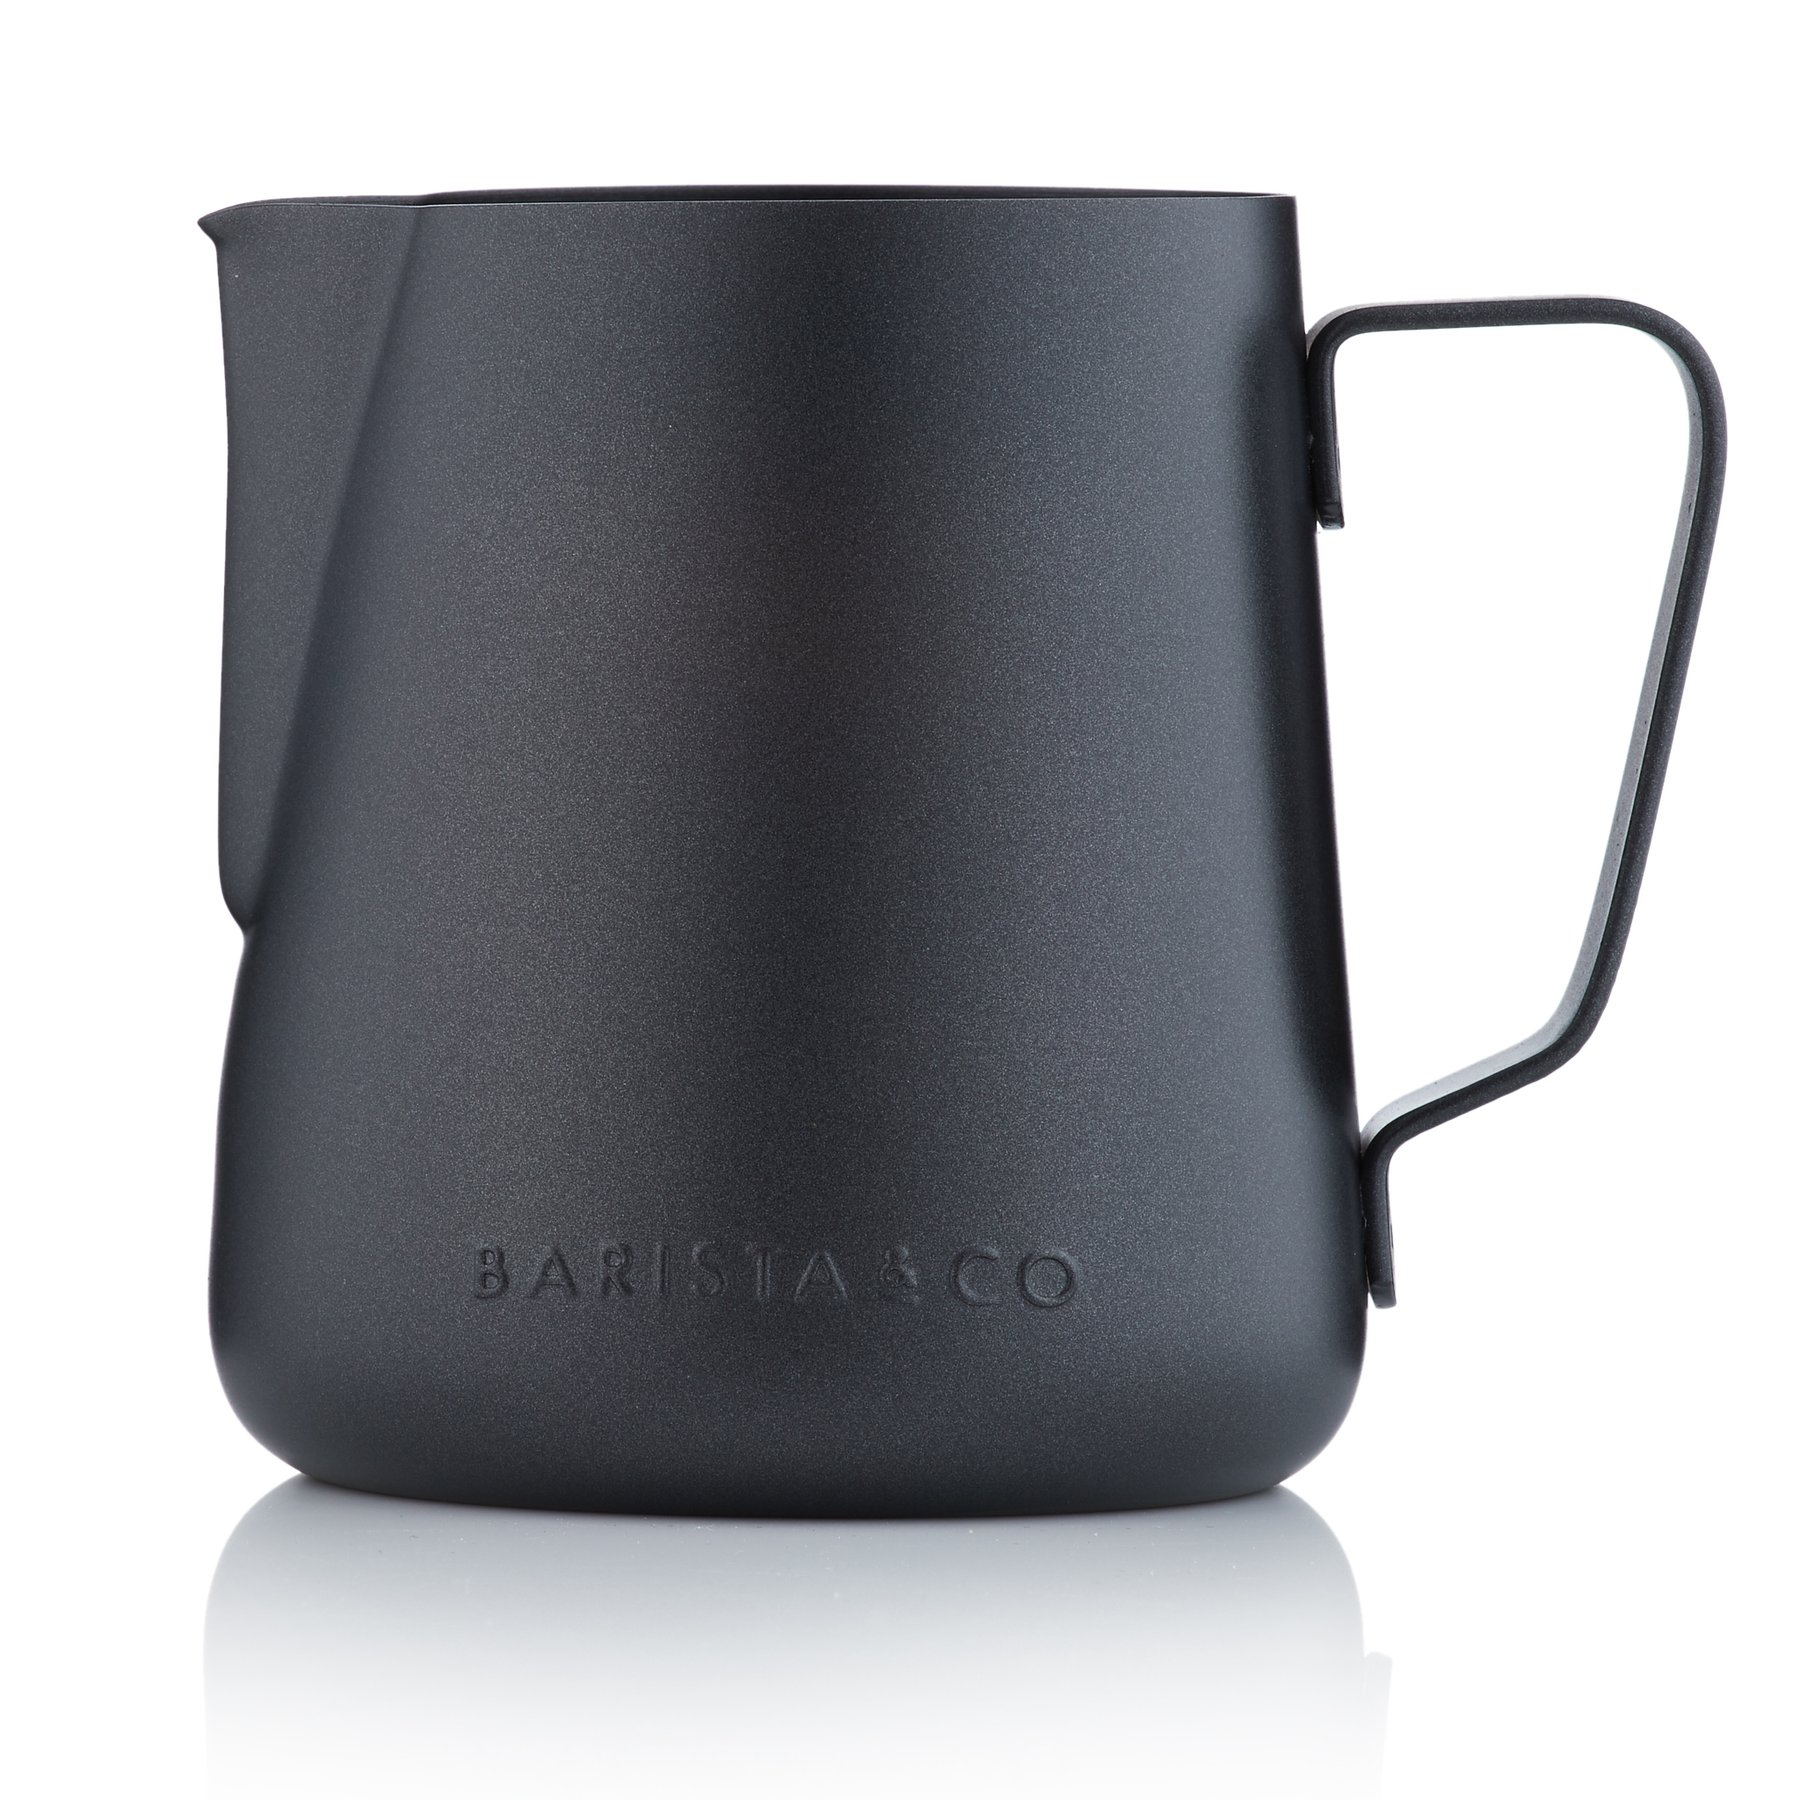 Barista & Co. Core Milk Jug Black Non-stick BC/B263